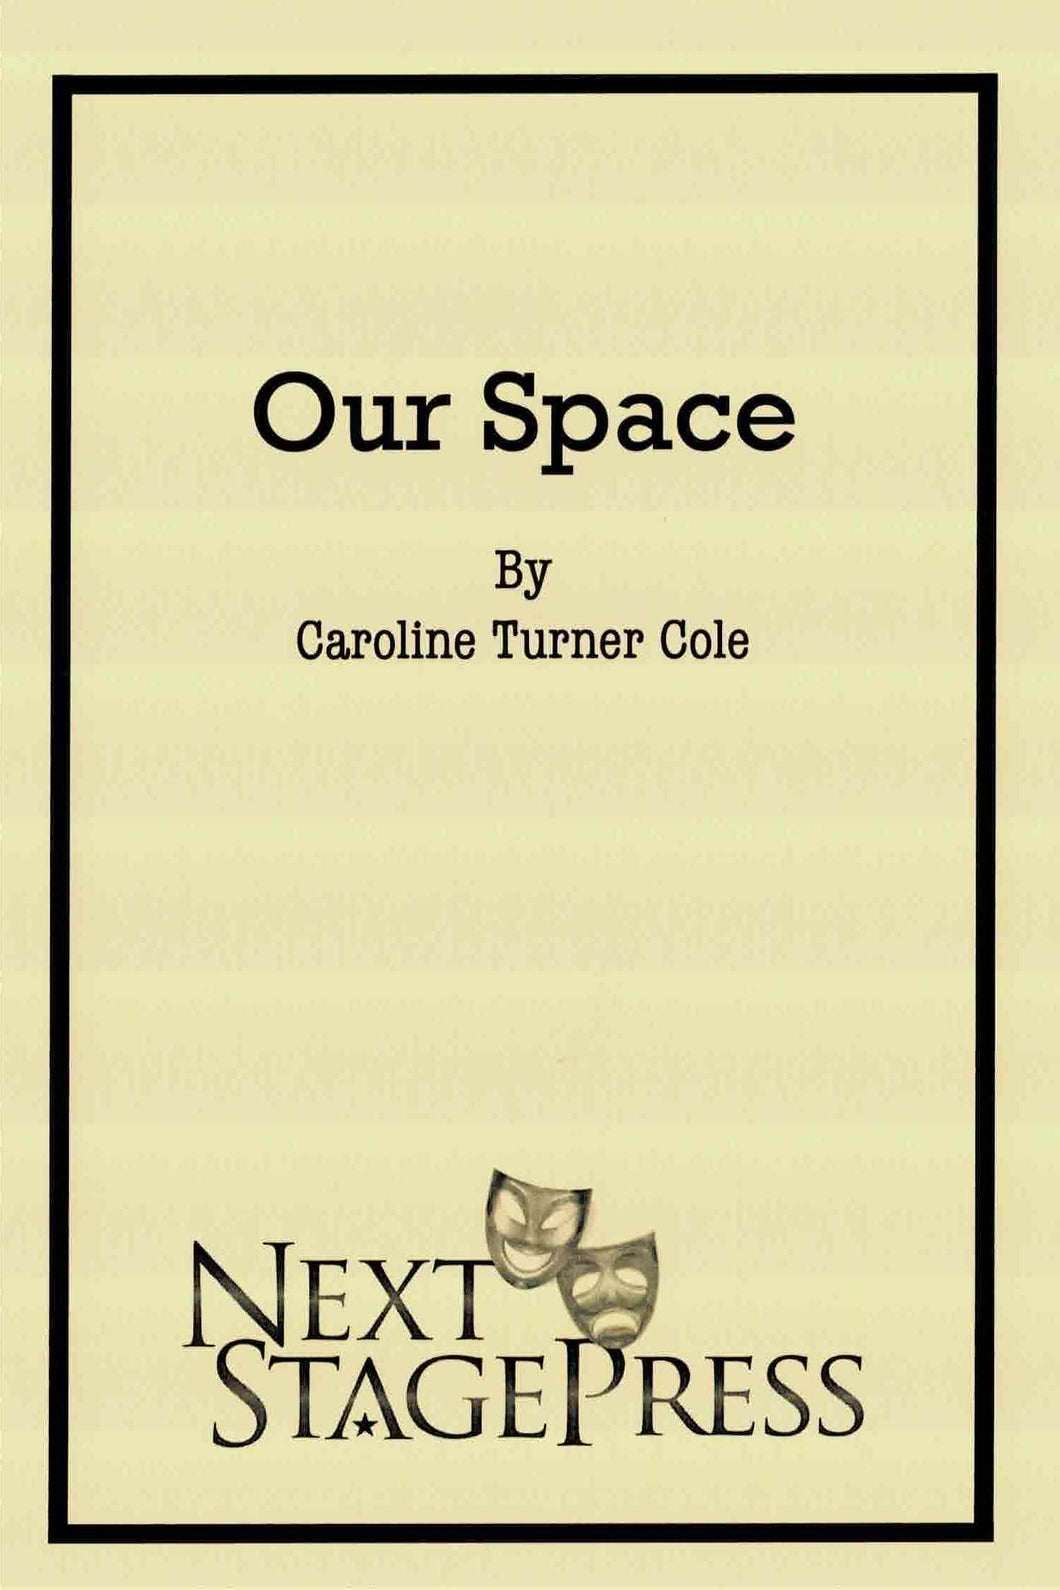 Our Space - Digital Copy